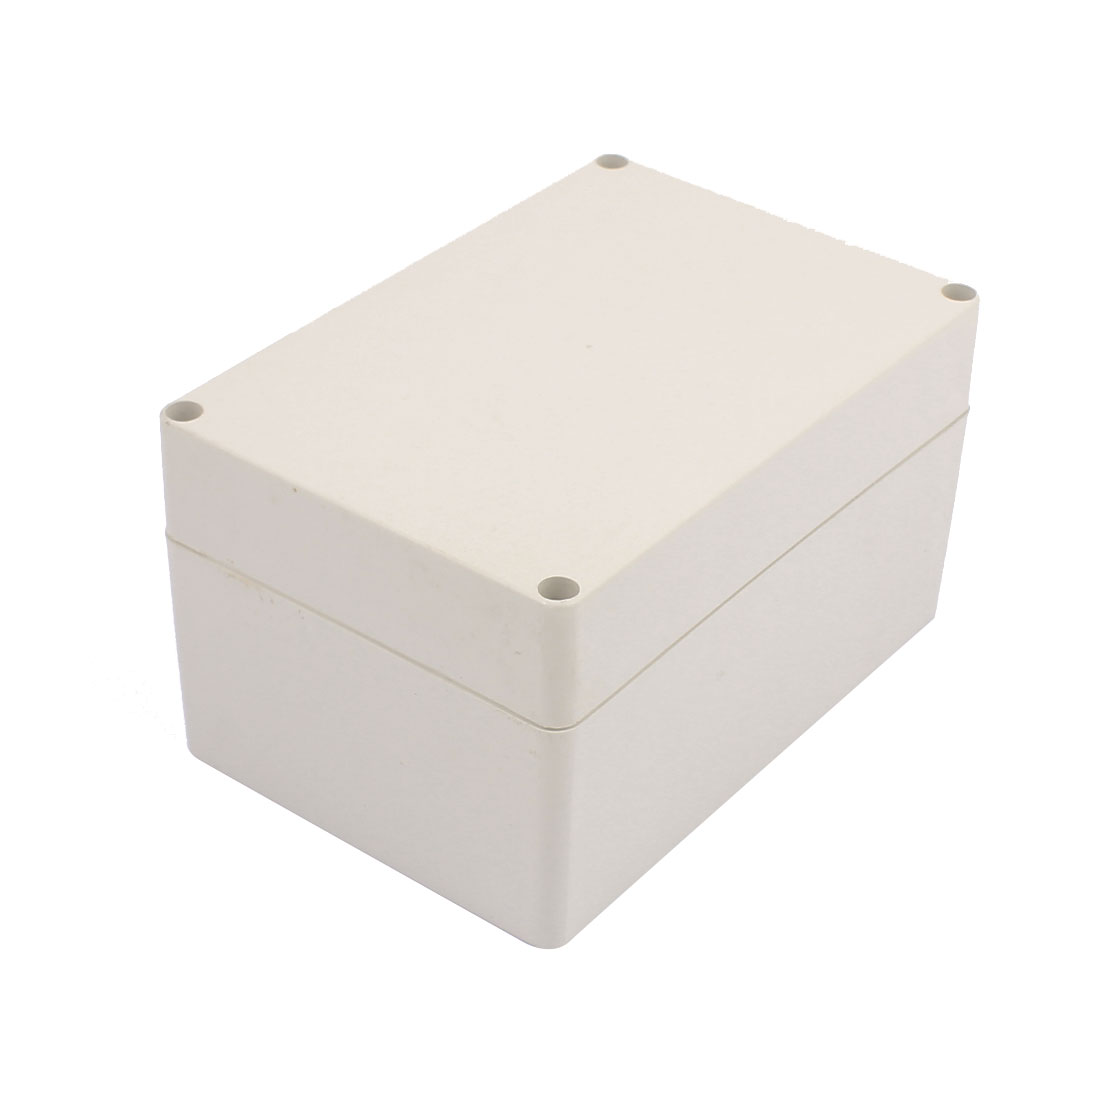 158 x 109 x 100mm Plastic Case DIY Junction Box Joint Hinged Lid